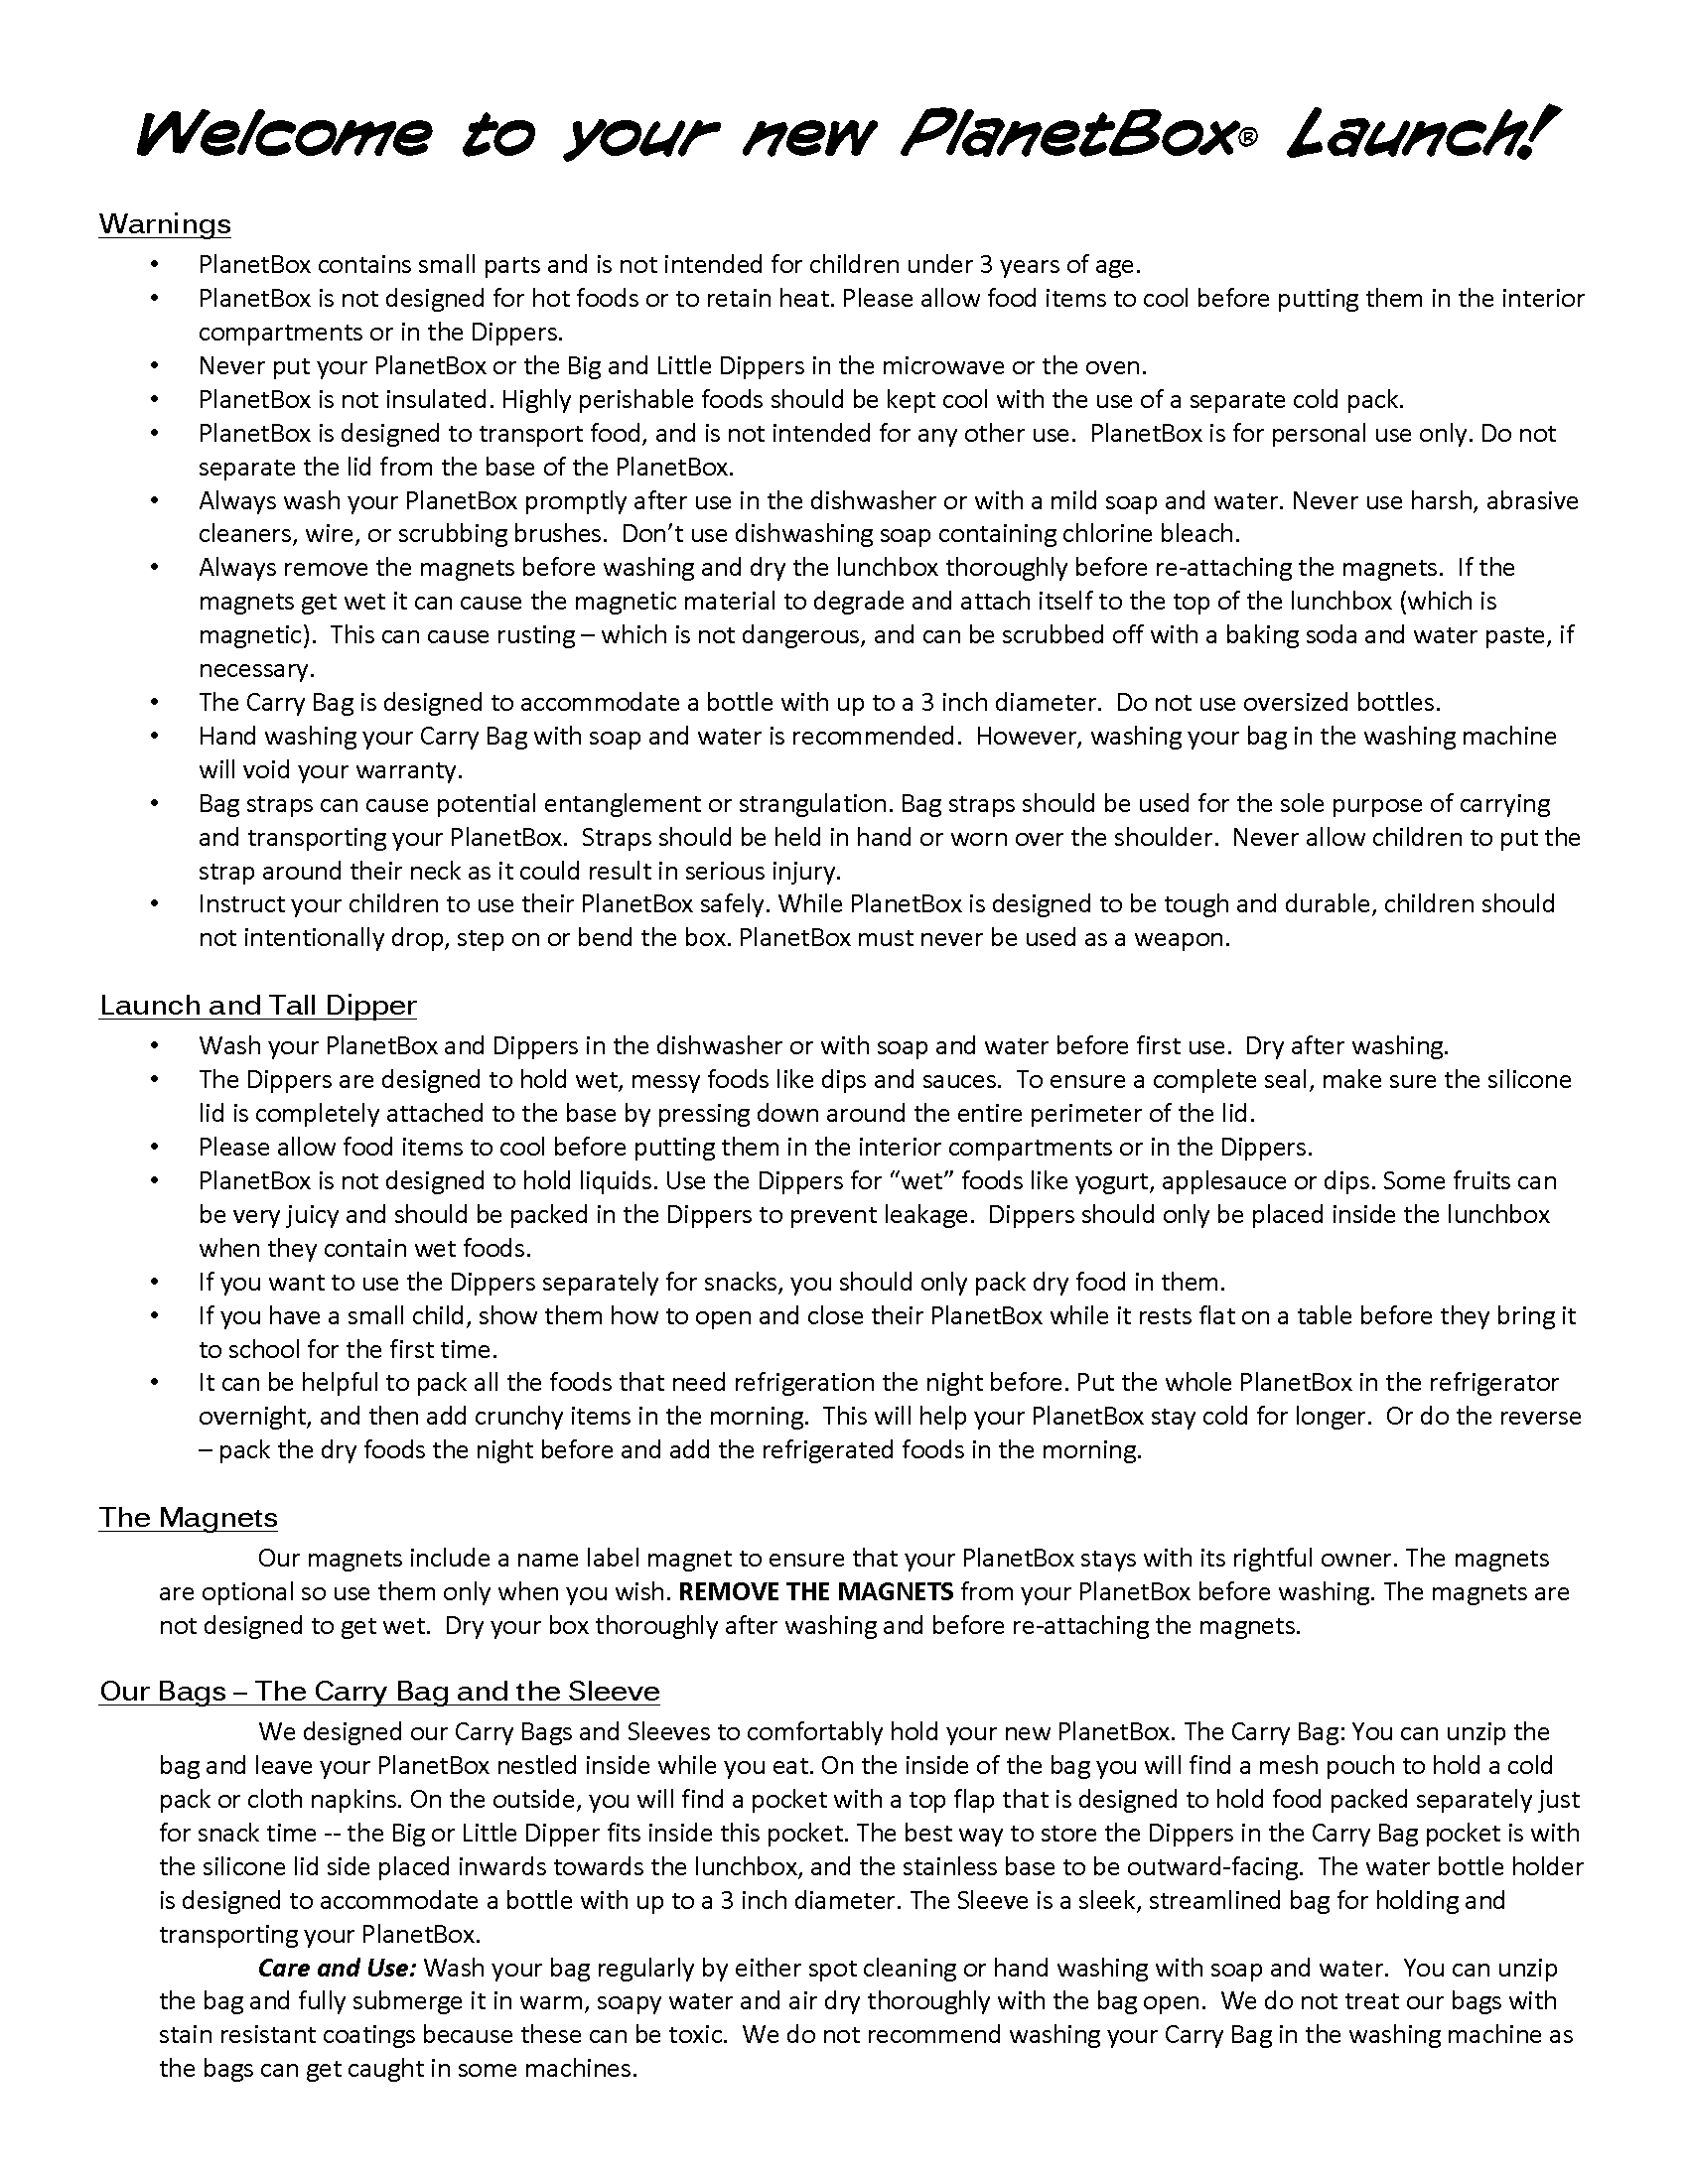 Launch instructions, page 1